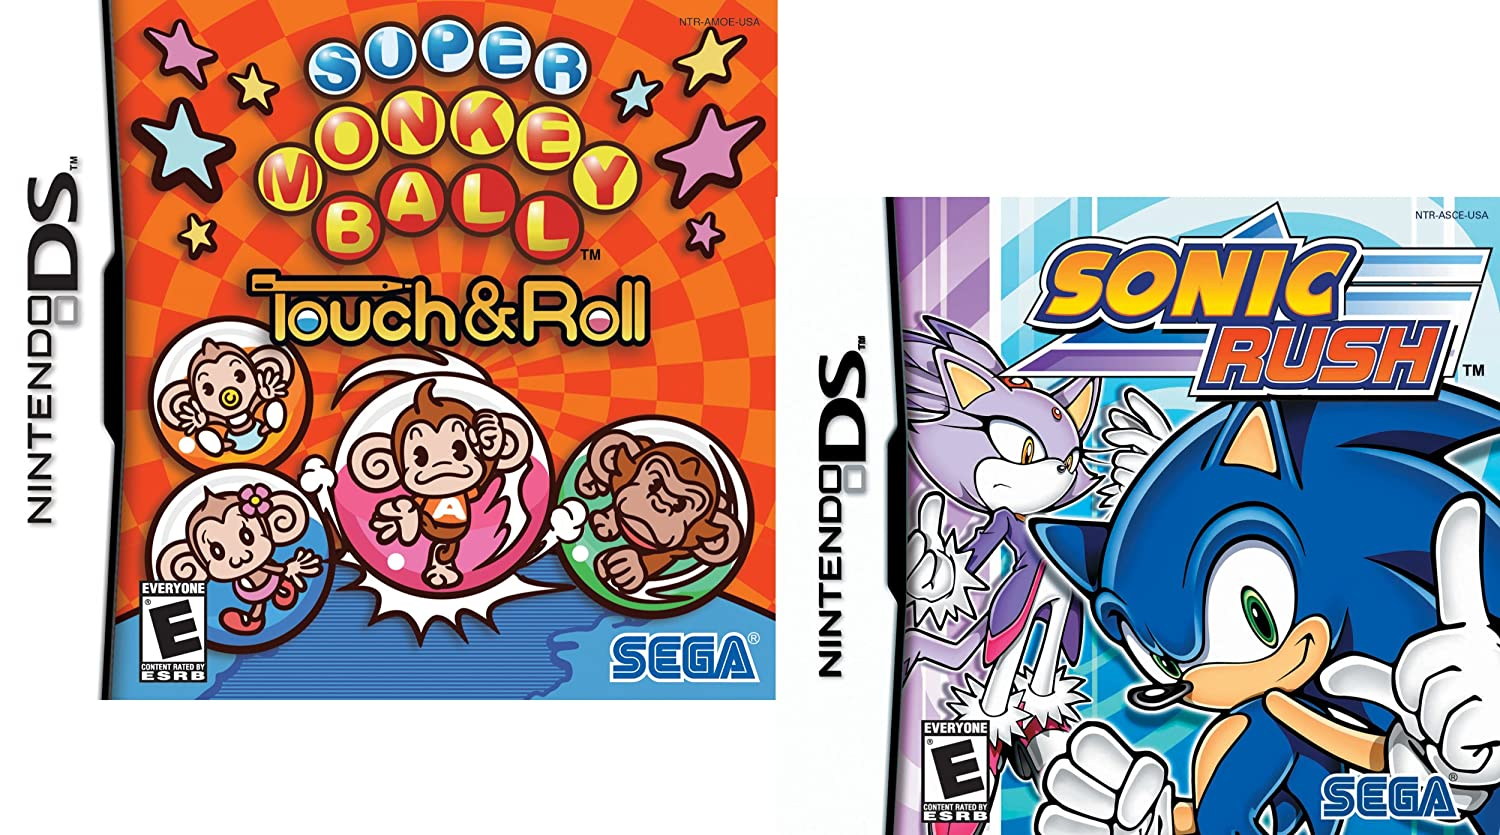 Sega Fun Pack featuring Sonic Rush and Super Monkey Ball Touch and roll - Nintendo DS